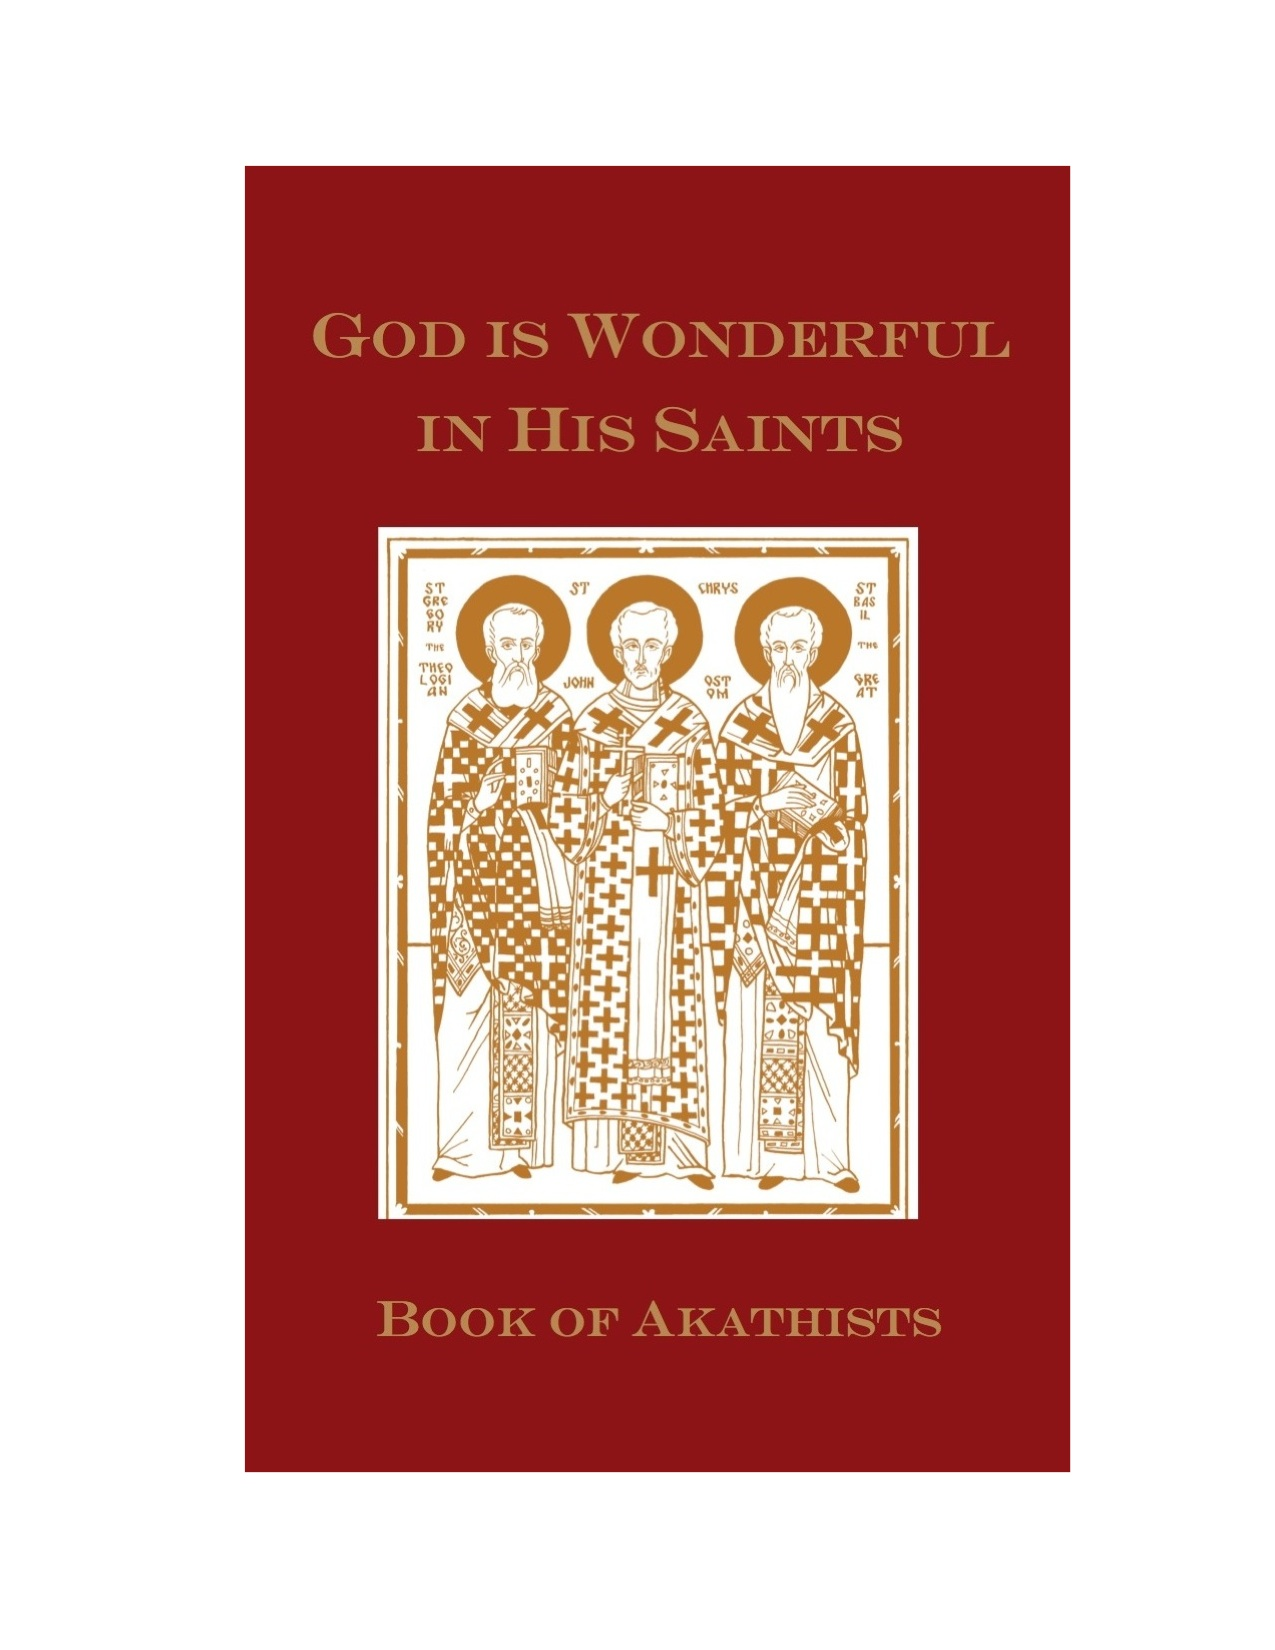 Book of Akathists: God is Wonderful in His Saints